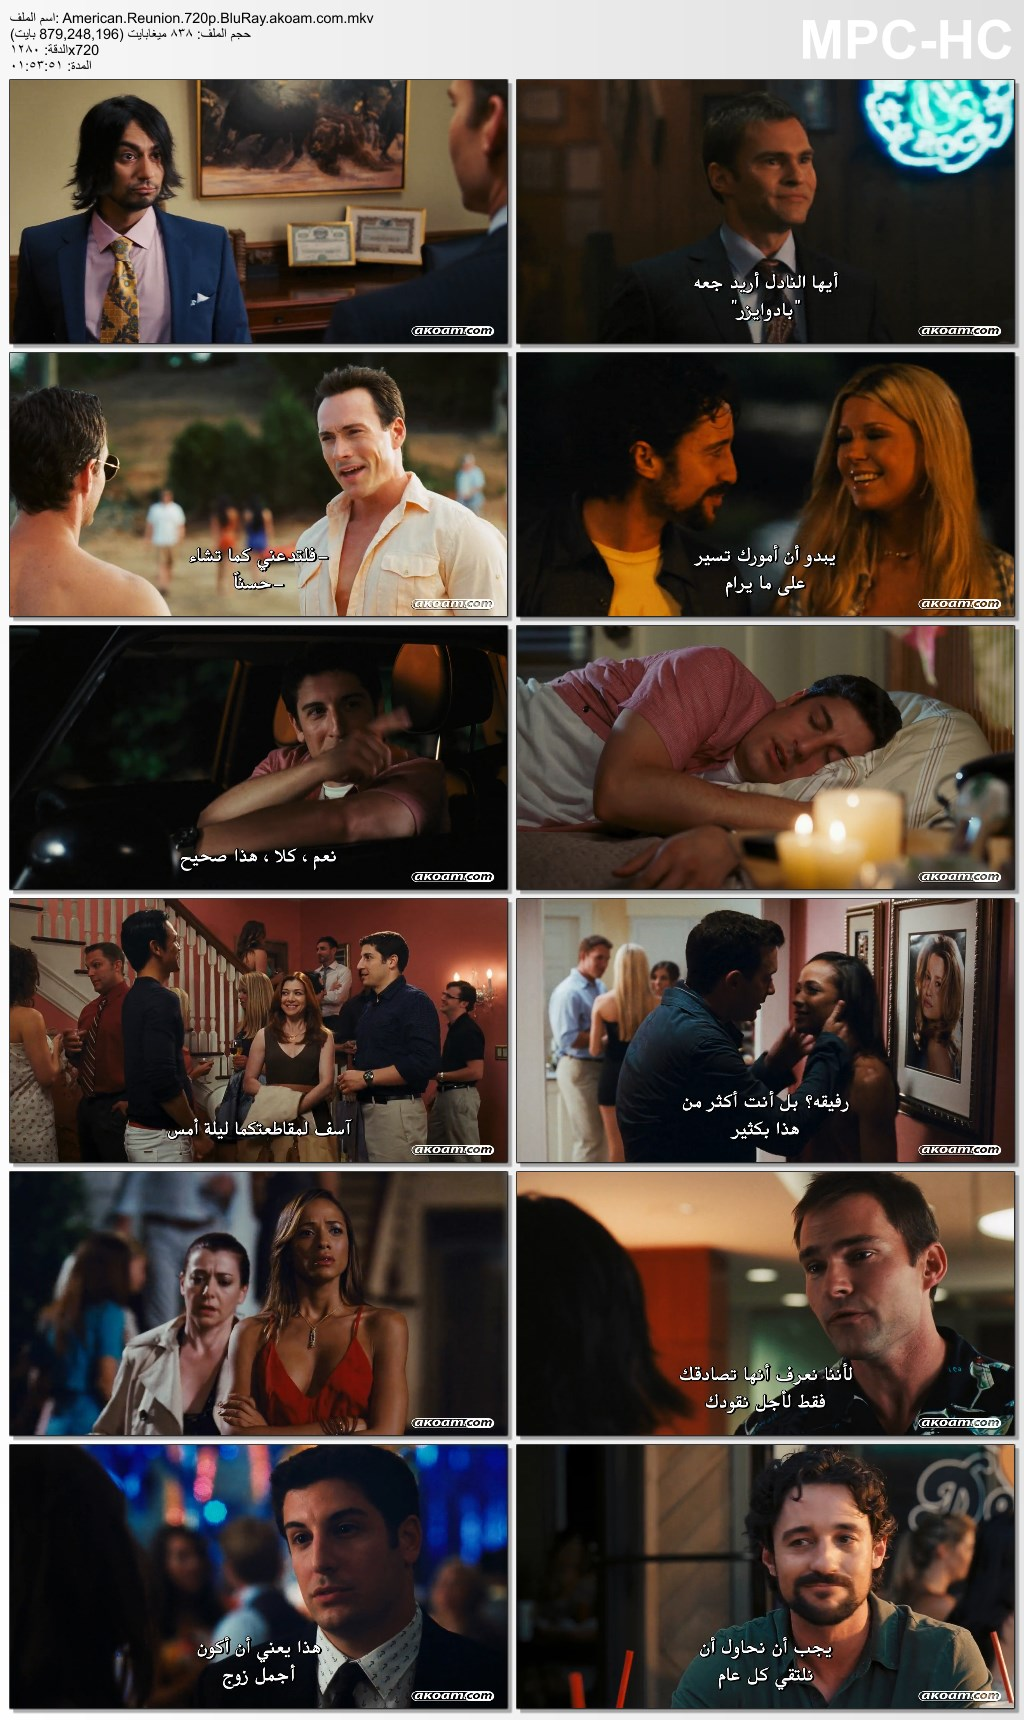 الكوميديا,الفطيرة الأمريكية,American Pie,American Pie 1,American Pie 2,American Wedding,American Pie Presents Band Camp,American Pie Presents: The Naked Mile,American Pie Presents: Beta House,American Pie: Book of Love,American Reunion 2012